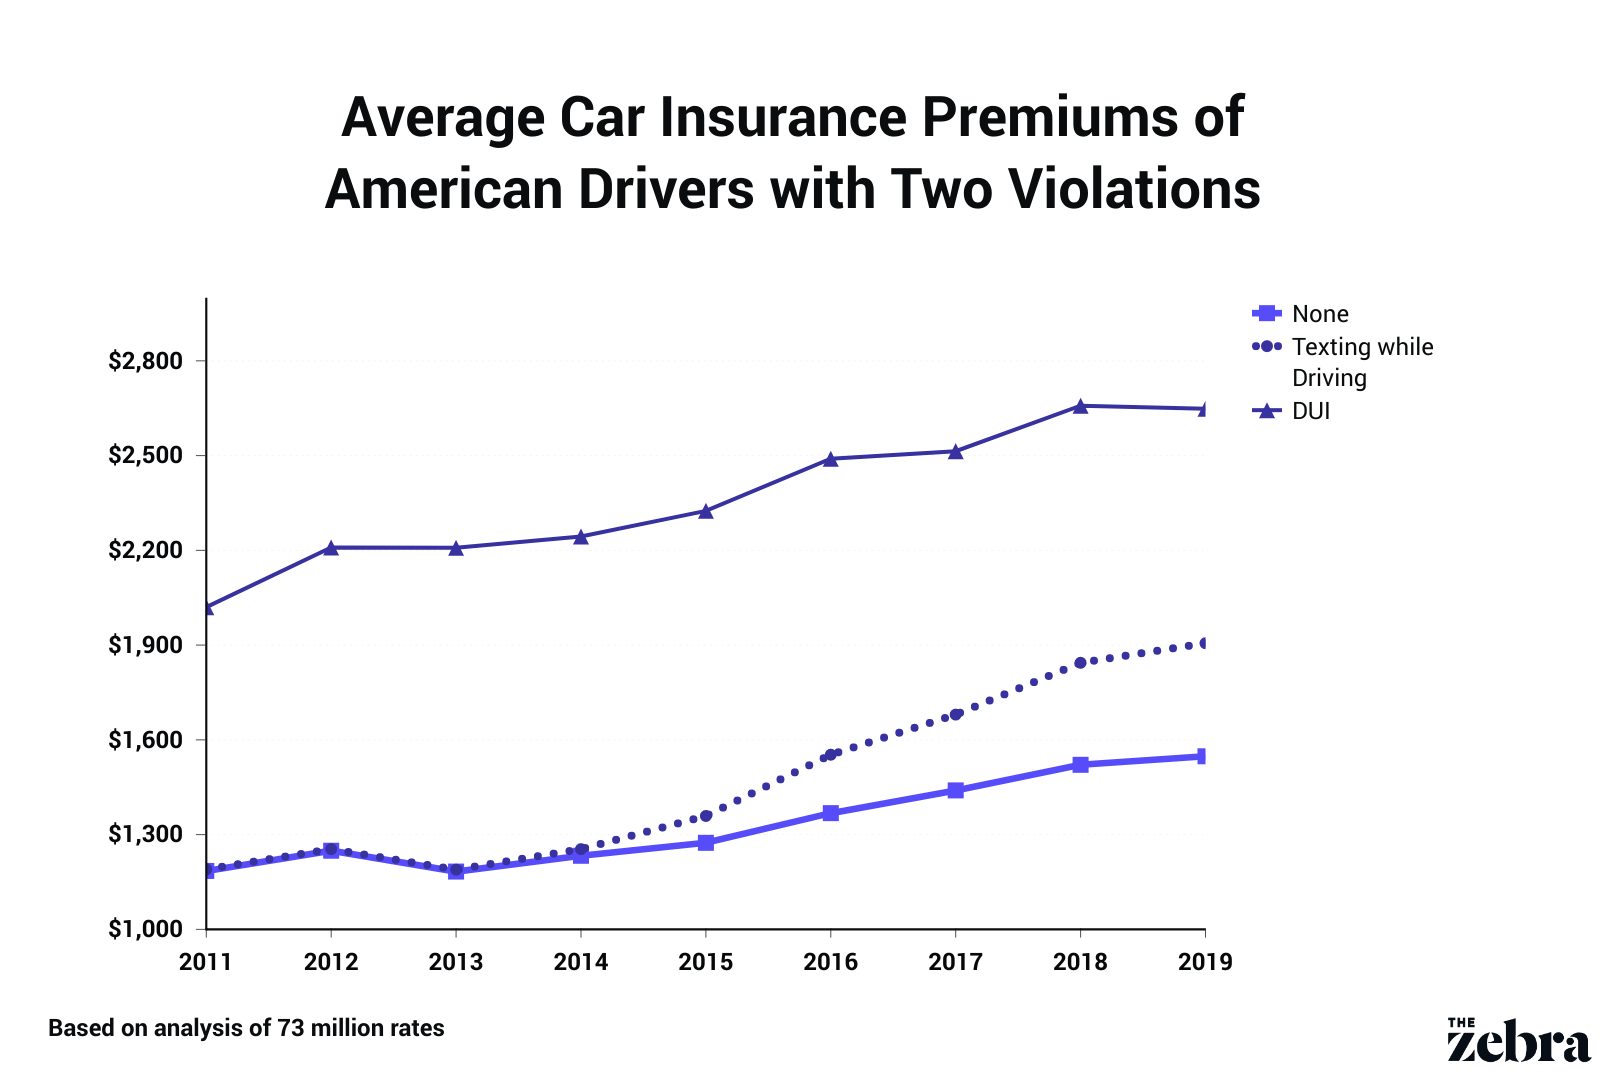 premiums with 2 violations